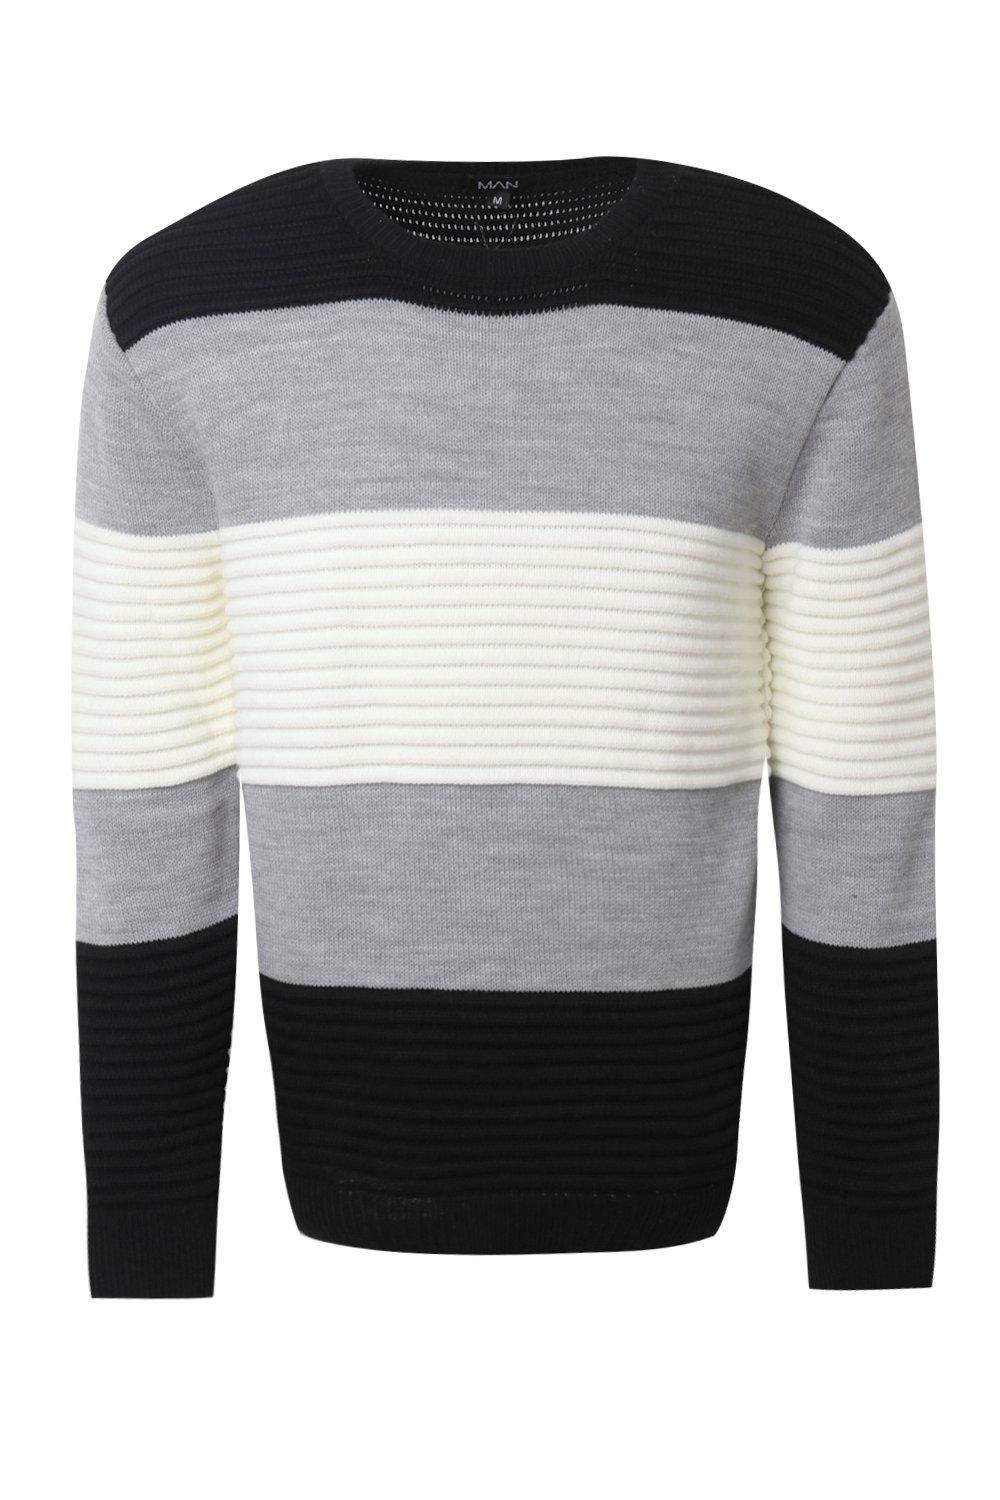 boohooMAN black Ottoman Rib Colour Block Knitted Jumper